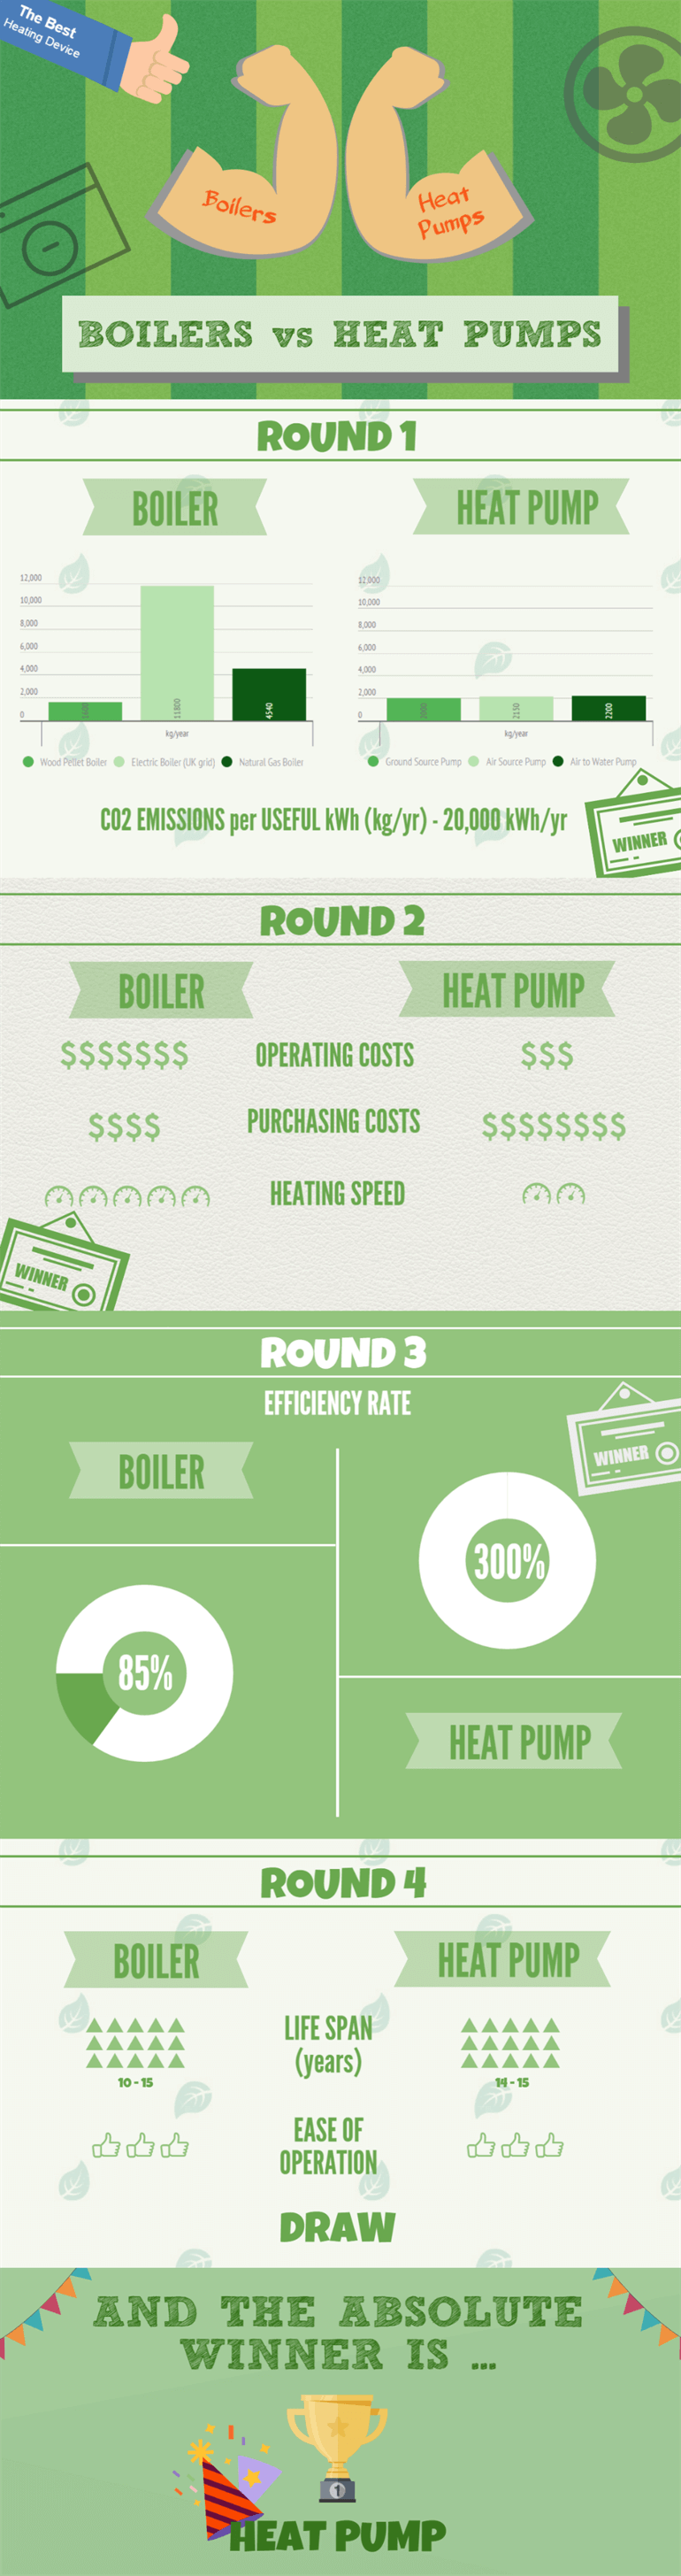 Infographic about boilers vs heat pumps